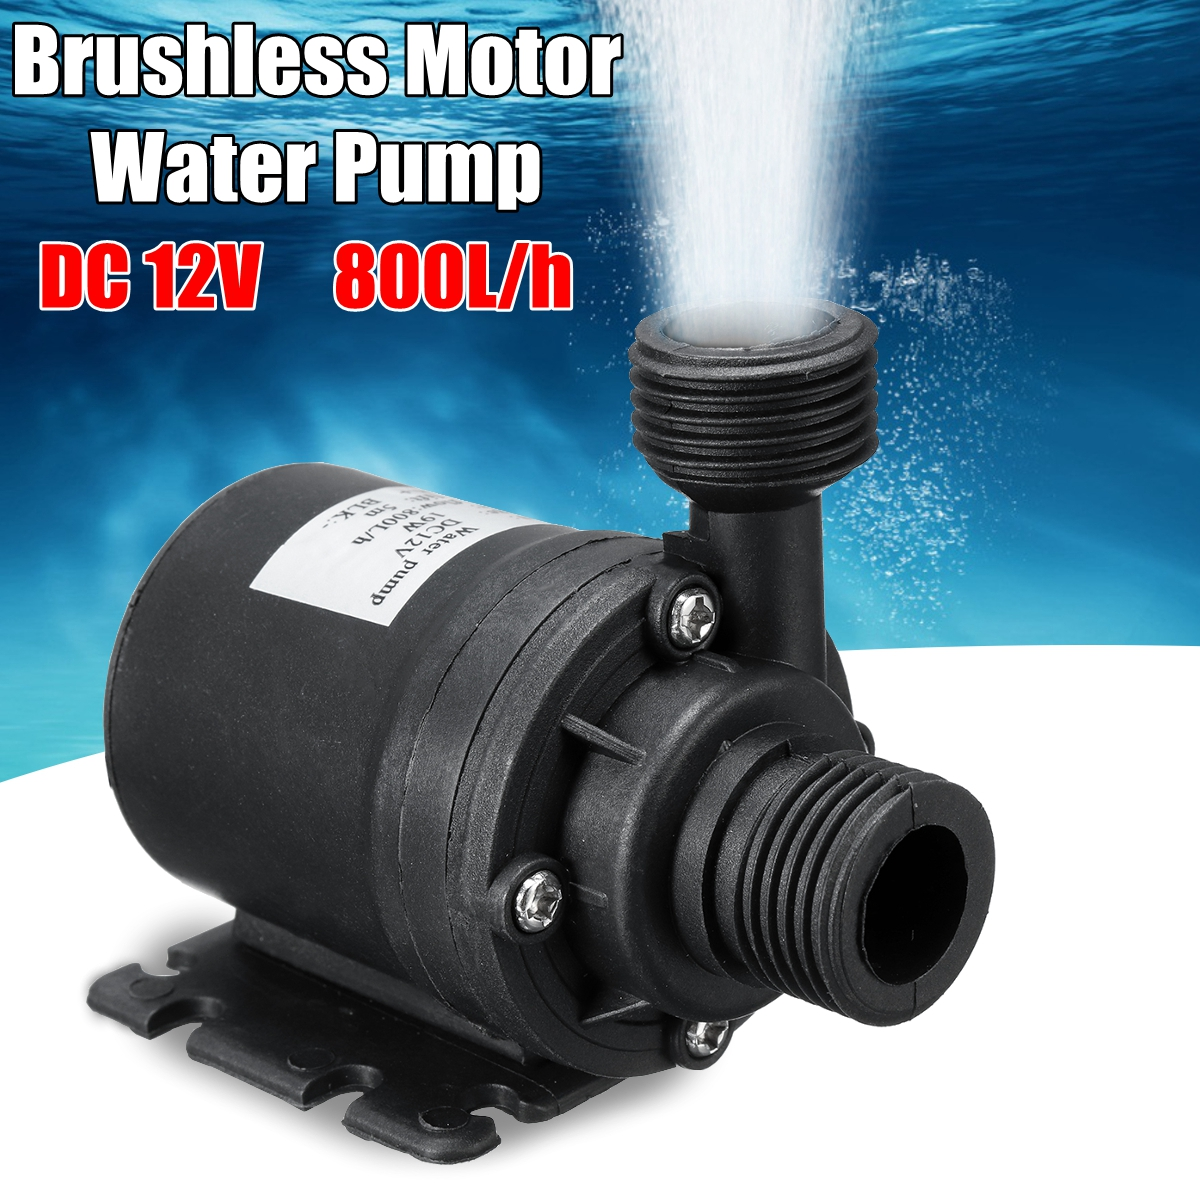 DC 12V 5M 800L/H Portable Mini Brushless Motor Ultra-quiet Submersible Water Pump For Cooling System Fountains Heater(China)